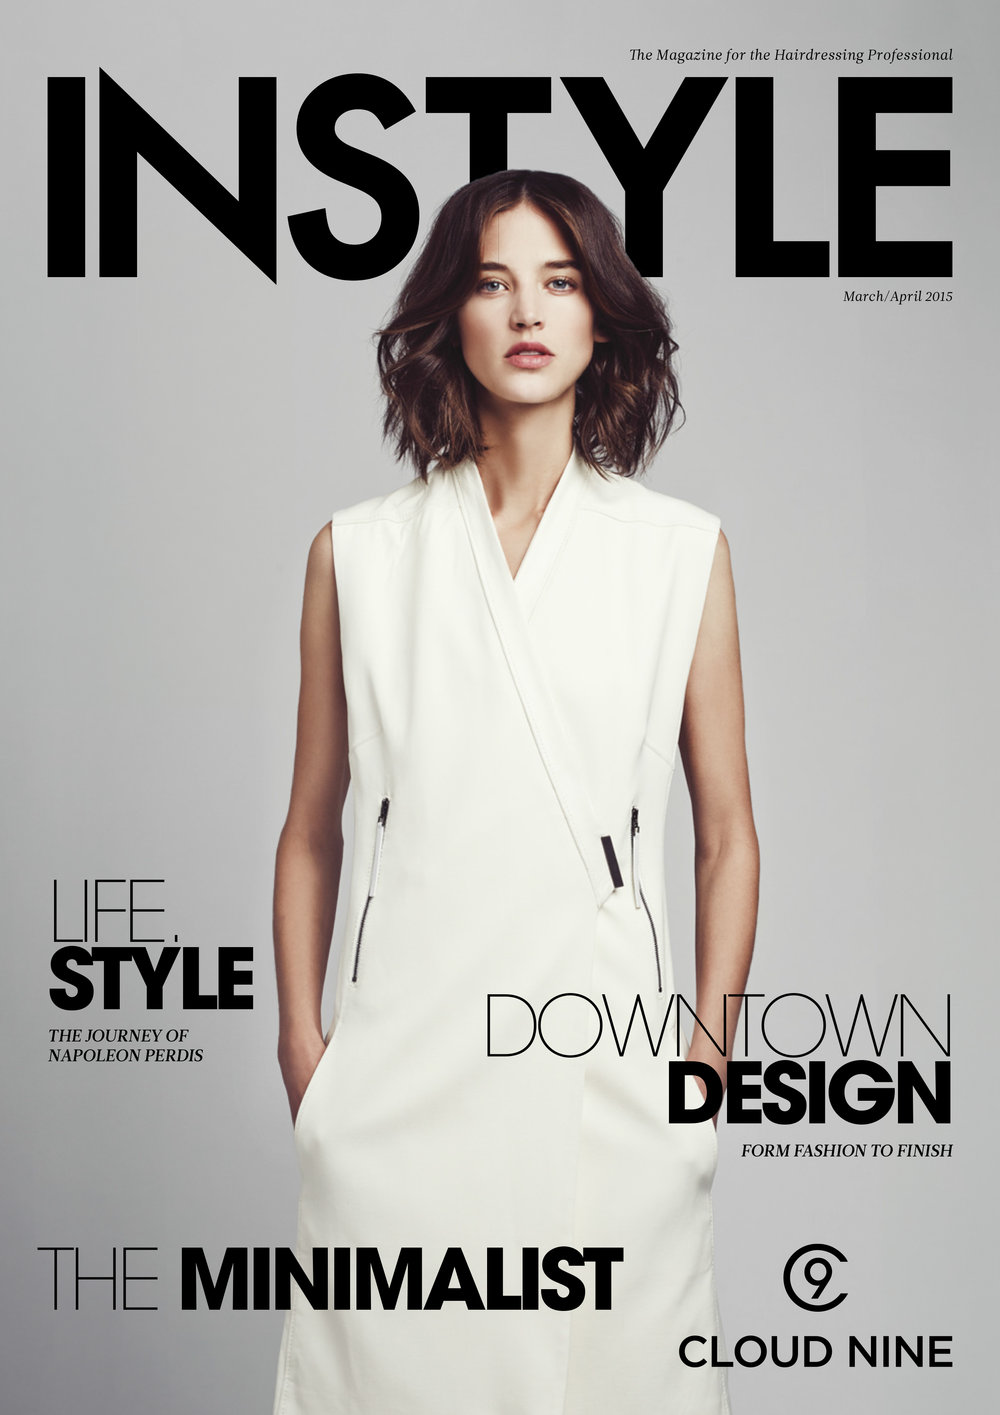 Instyle MarchApril 2015 1.jpg